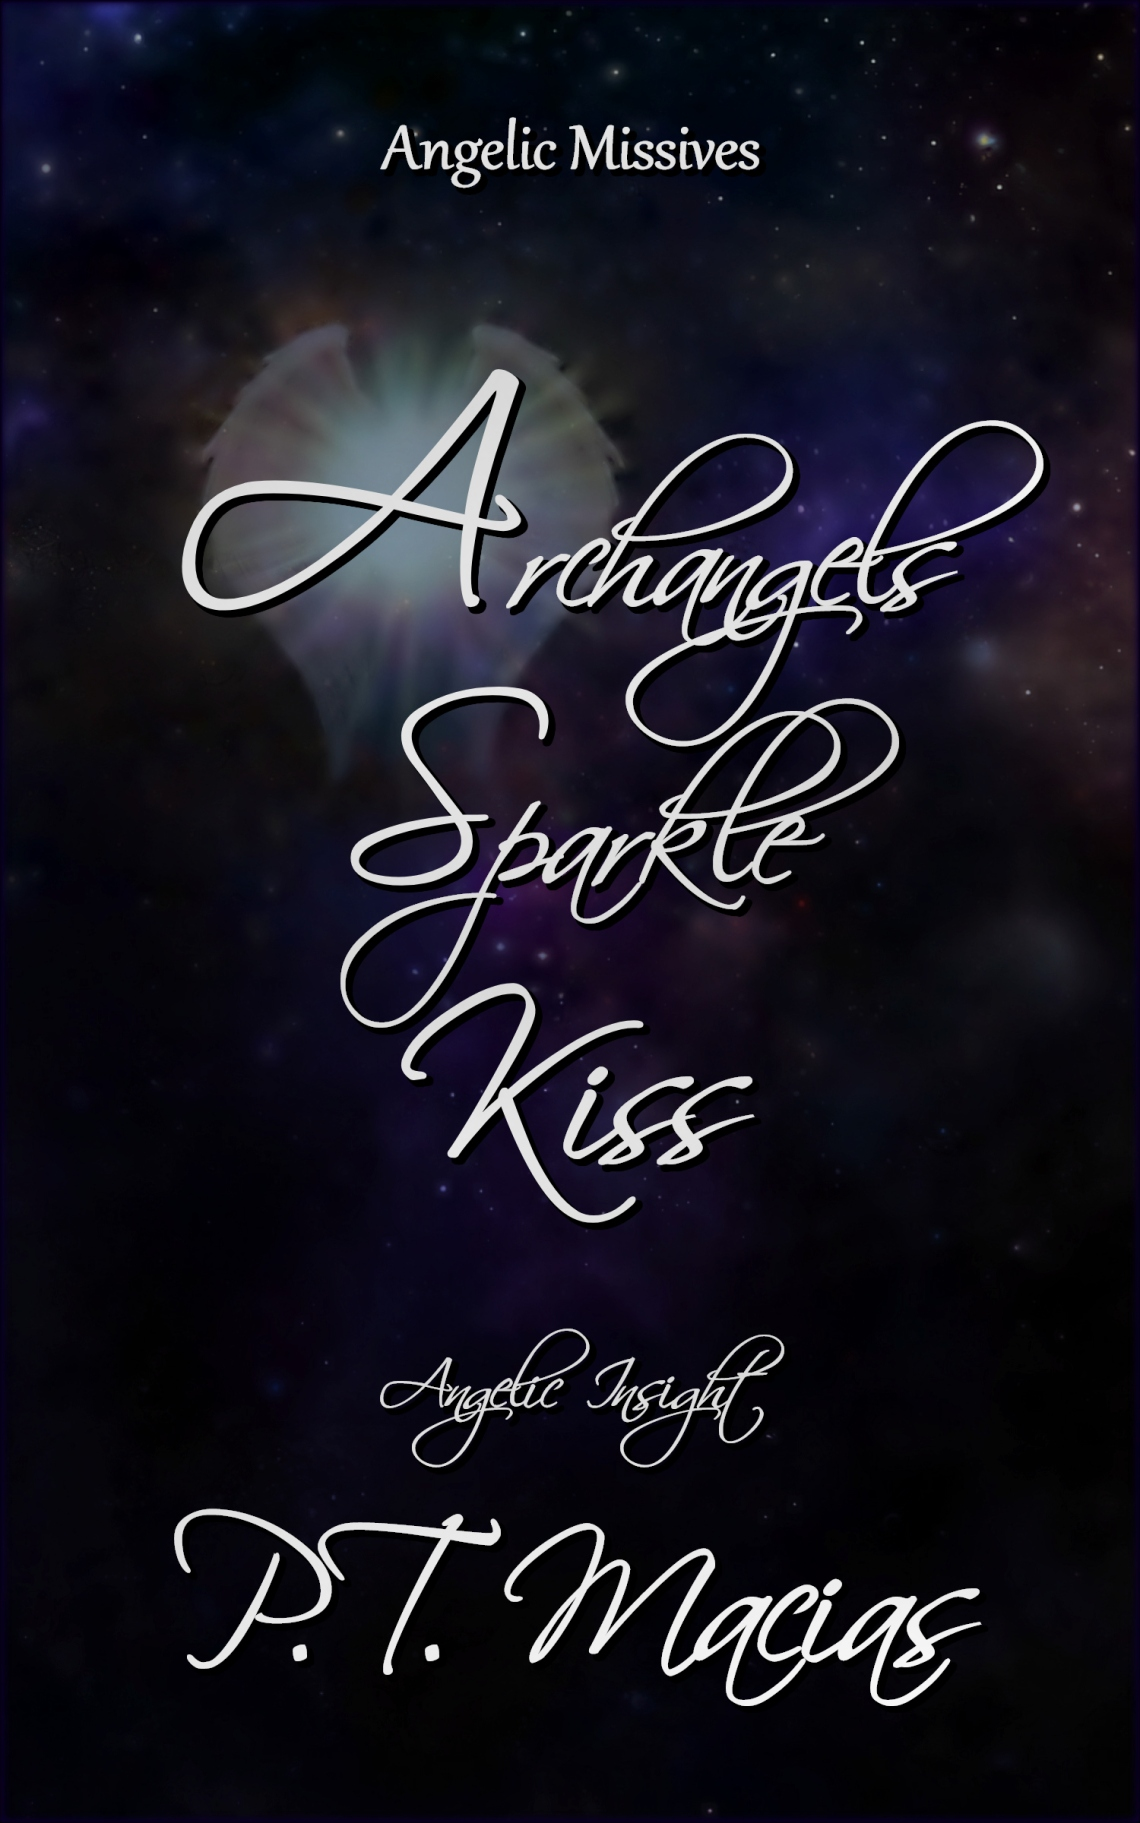 Archangels Sparkle Kiss, Angelic Missives, Angelic Insights By P.T. Macias